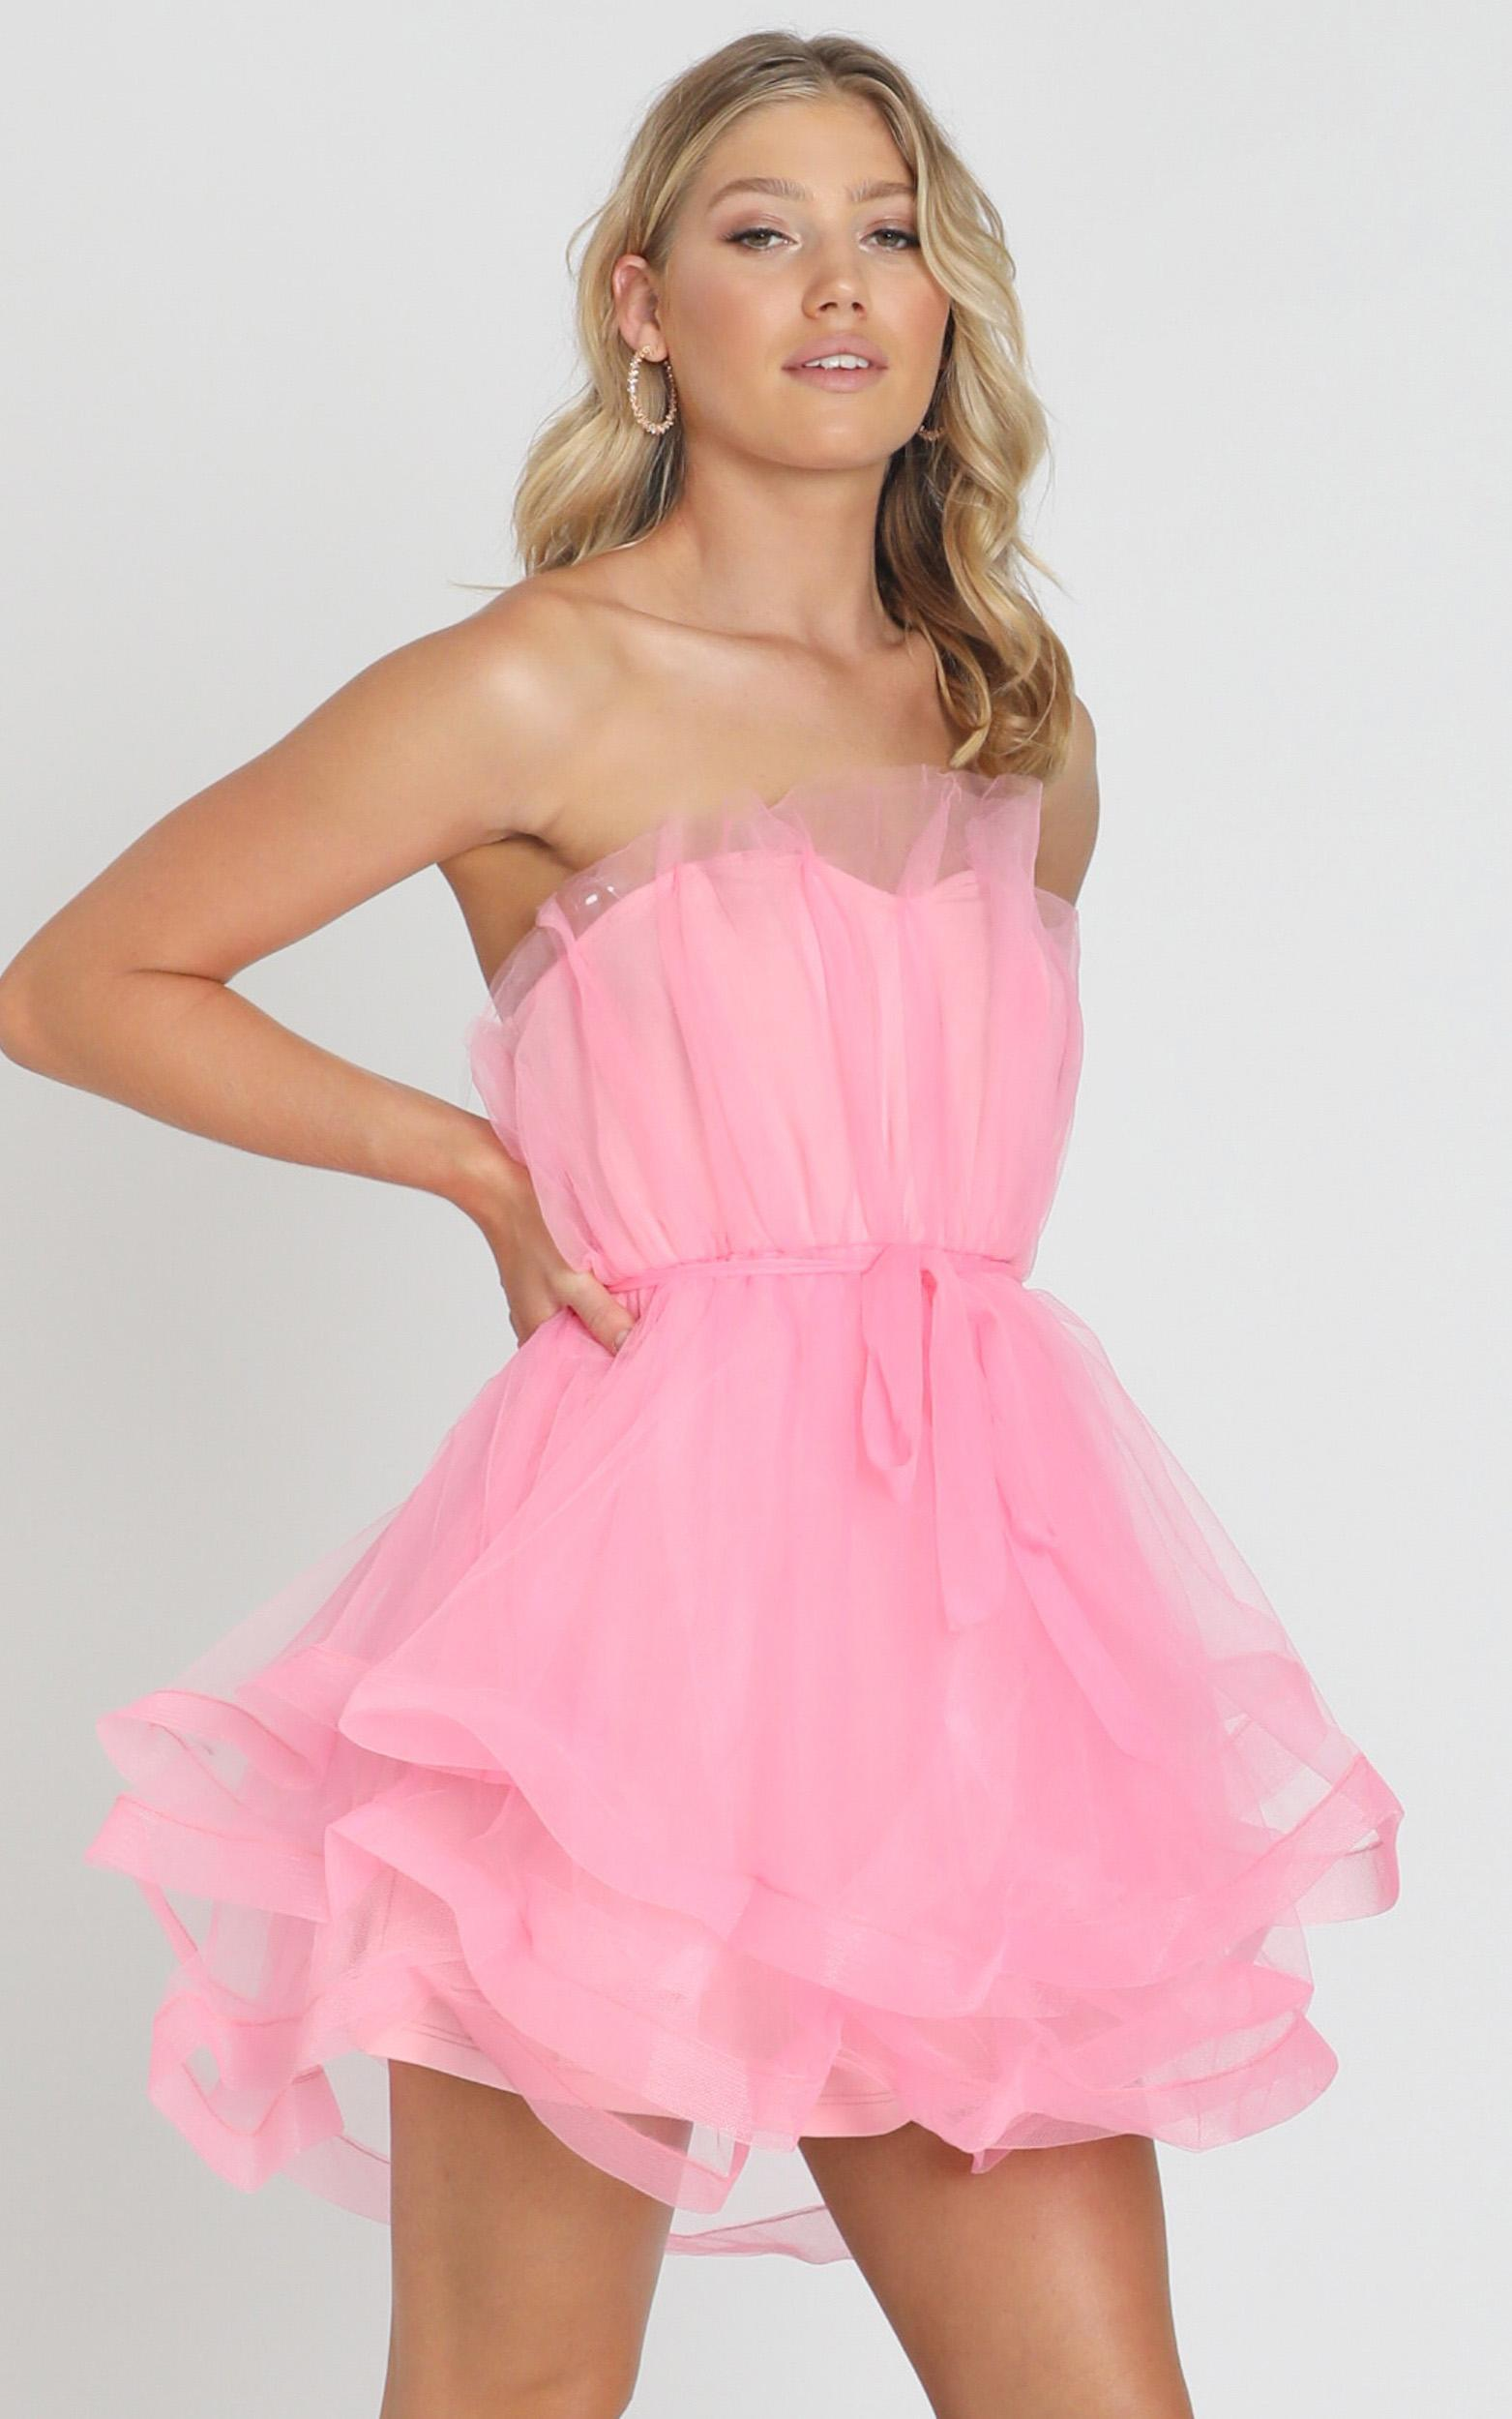 Sheffield Dress in pink - 8 (S), Pink, hi-res image number null